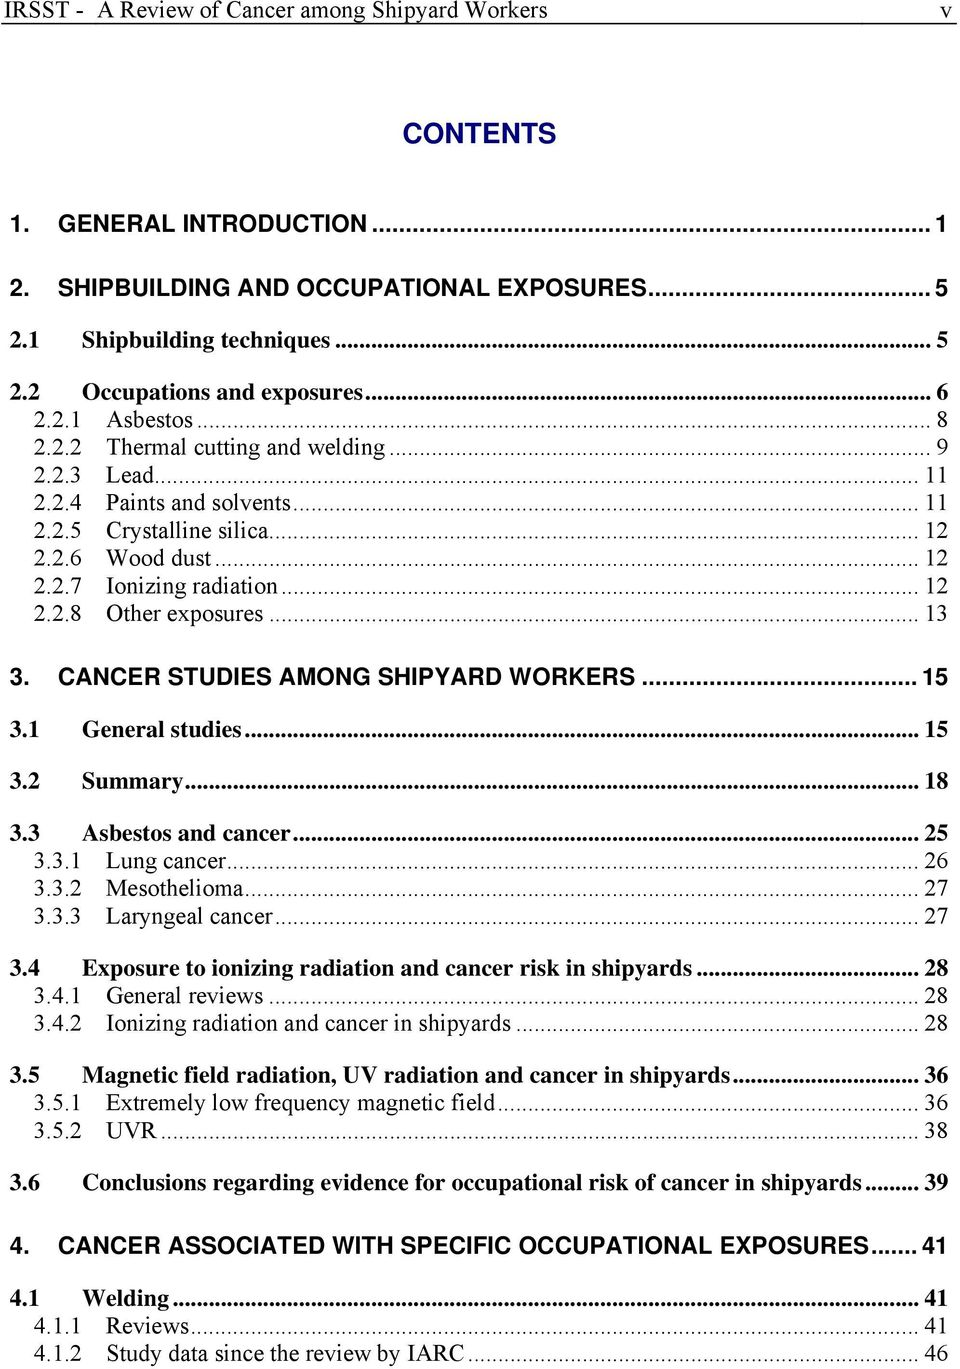 .. 13 3. CANCER STUDIES AMONG SHIPYARD WORKERS... 15 3.1 General studies... 15 3.2 Summary... 18 3.3 Asbestos and cancer... 25 3.3.1 Lung cancer... 26 3.3.2 Mesothelioma... 27 3.3.3 Laryngeal cancer.